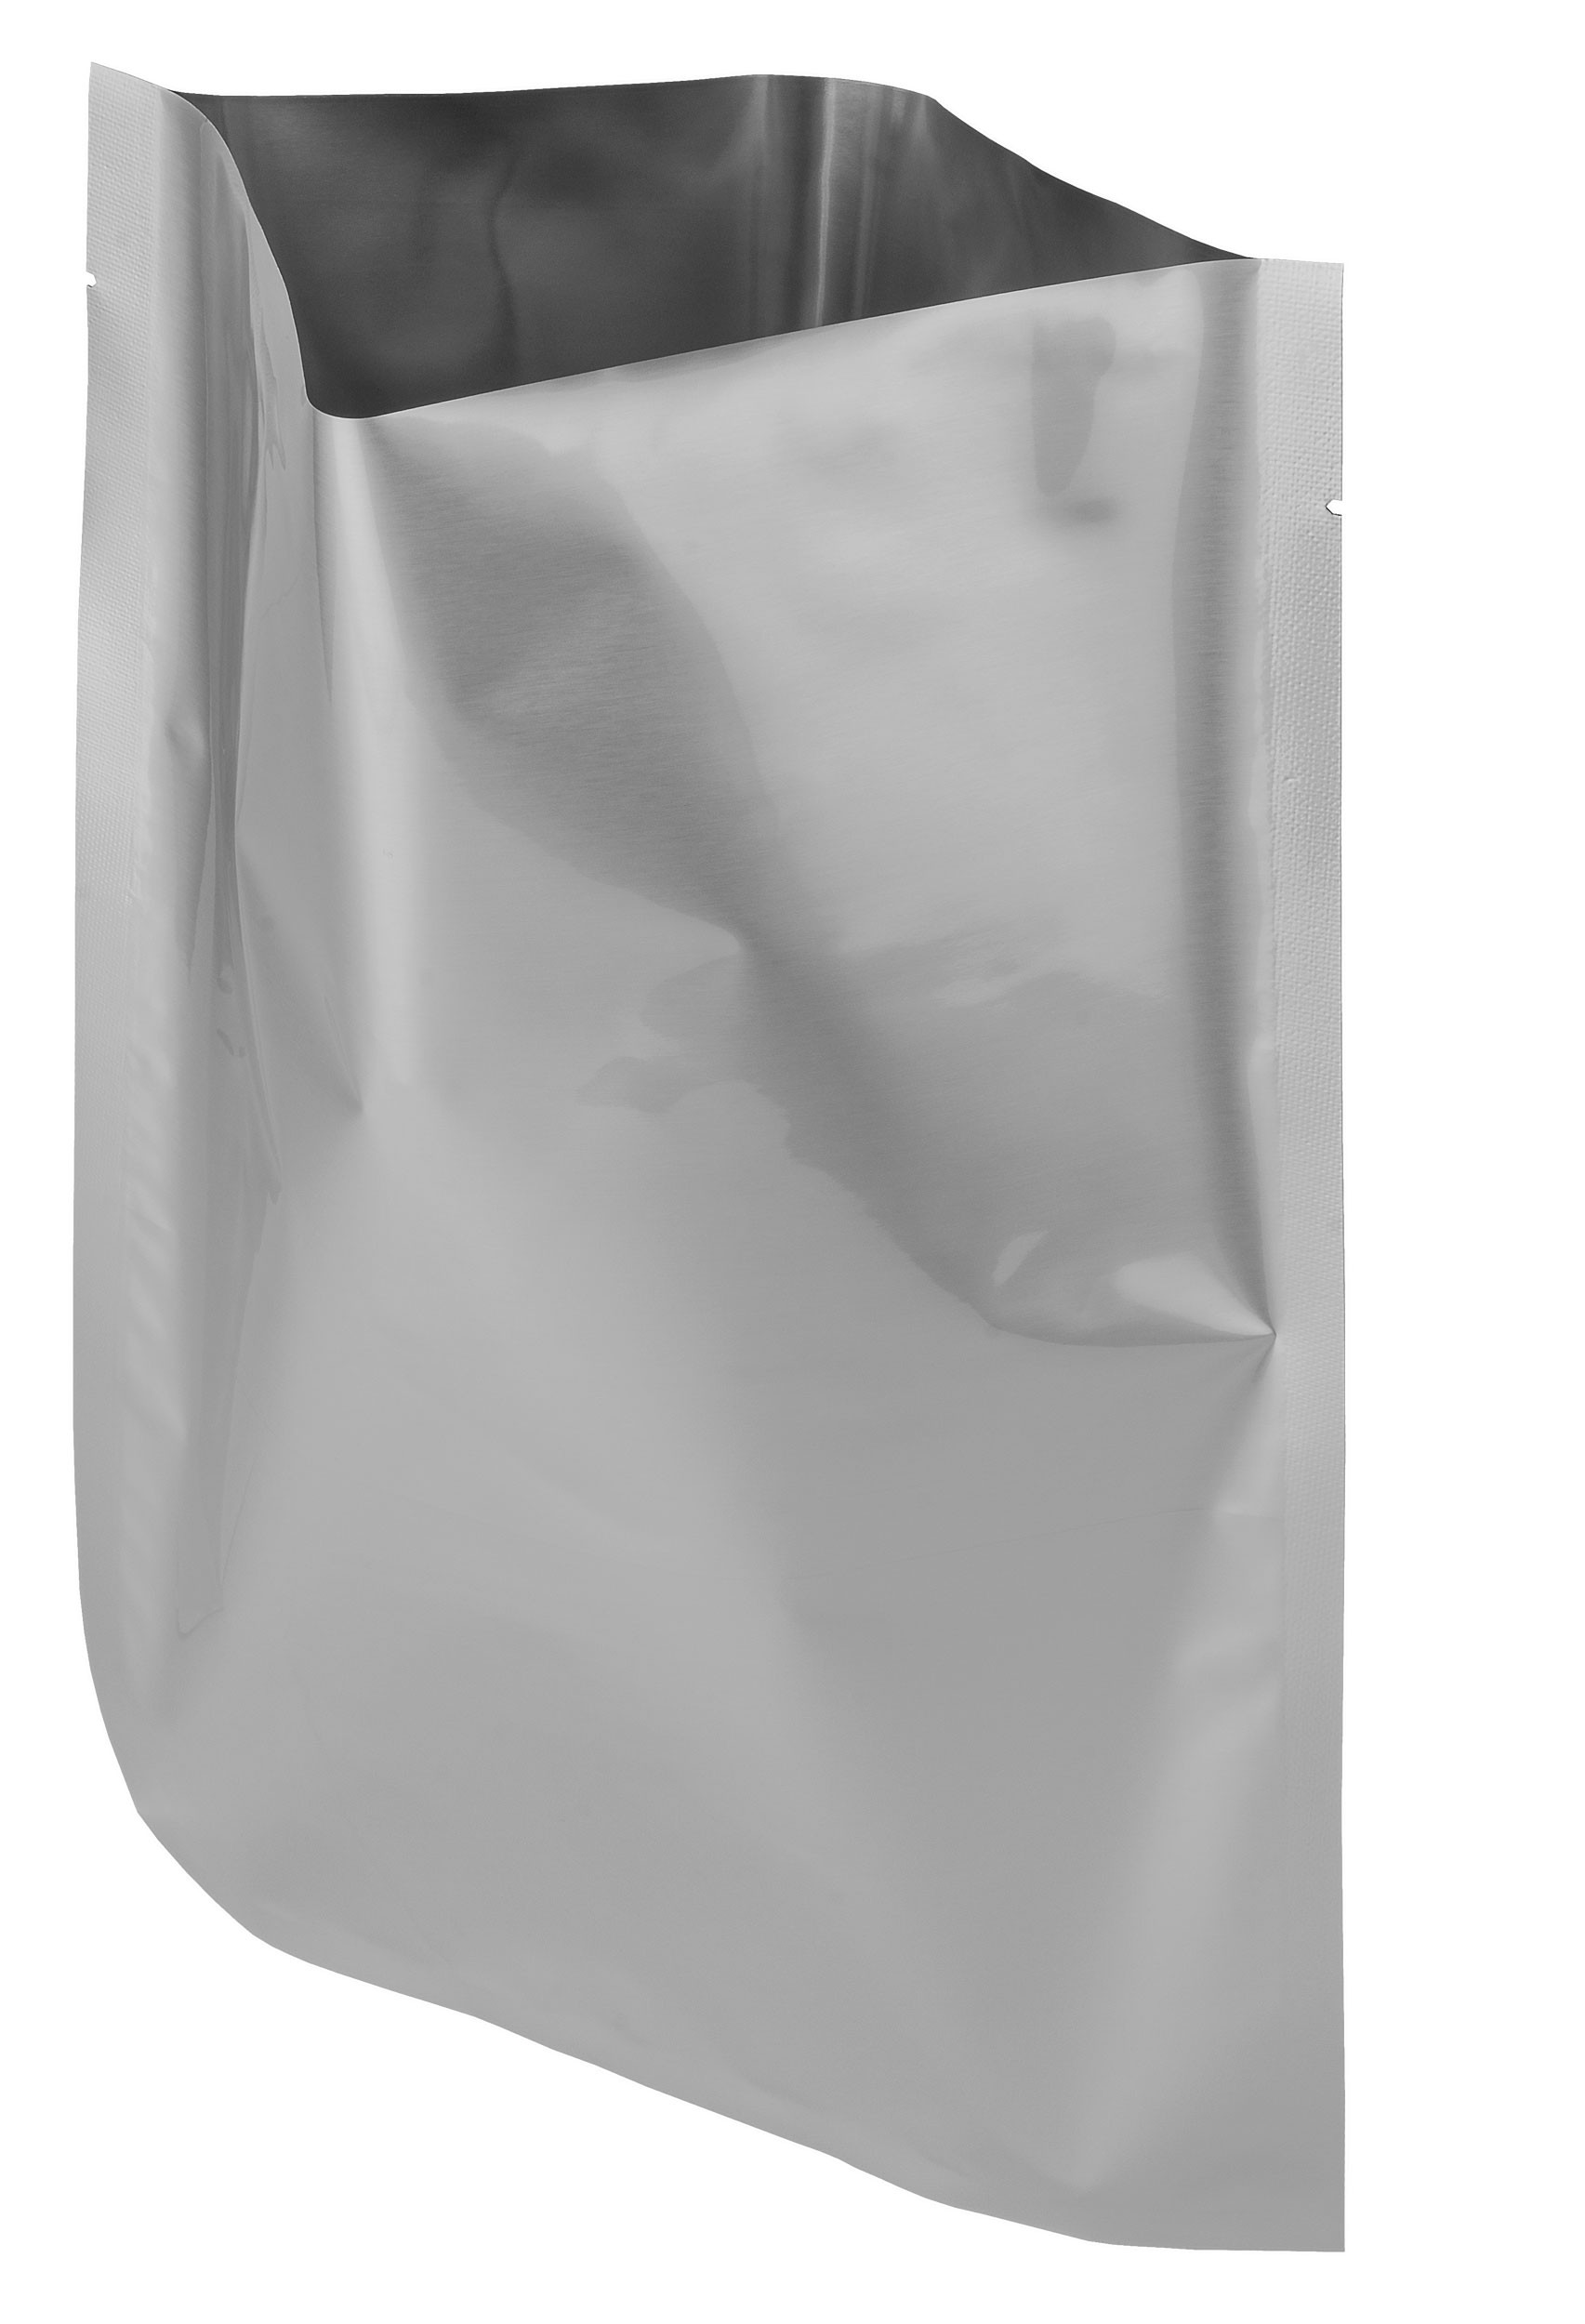 Dry-Packs 100-1-Gallon Mylar Bags, 10 by 14-Inch for Dried Dehydrafted